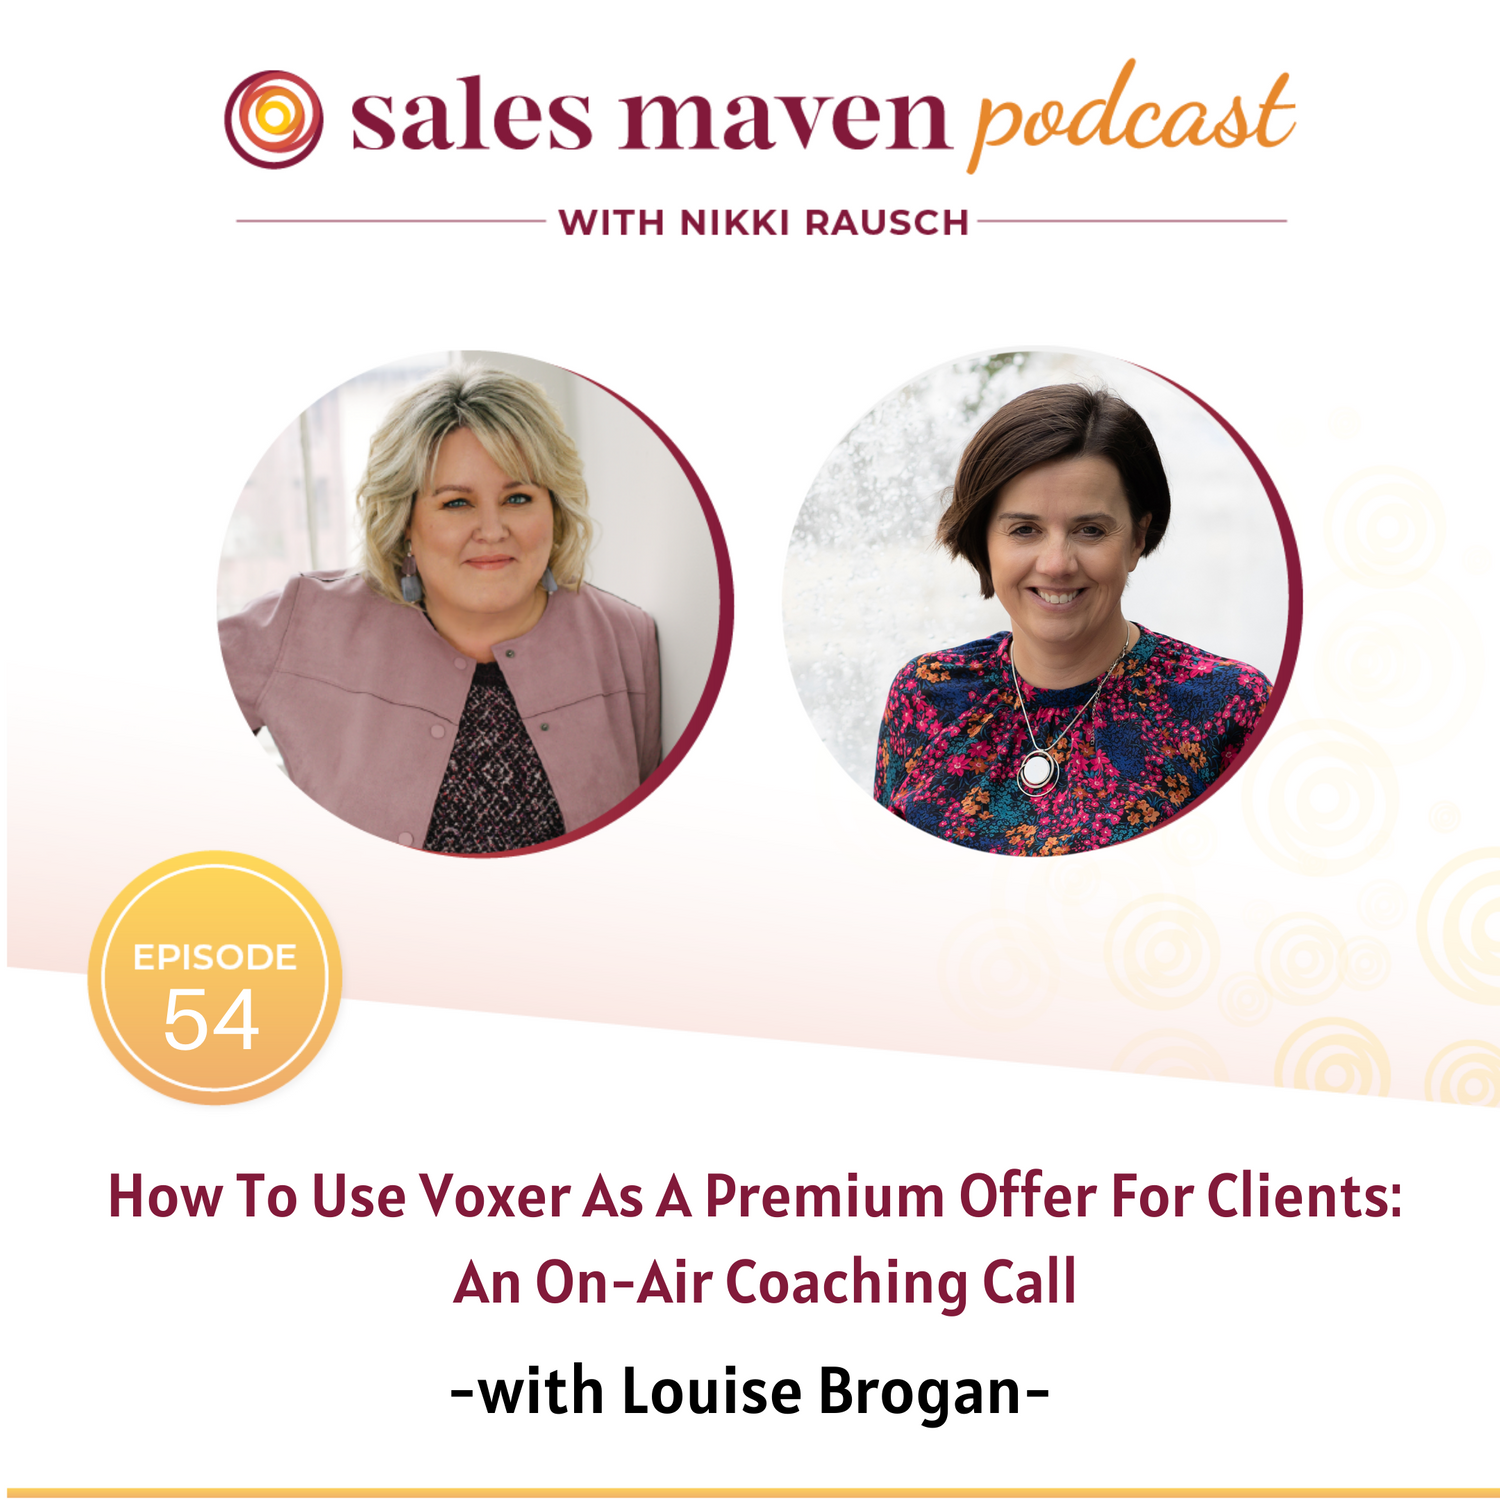 Sales Maven Podcast - how to use Voxer as a premium offer for clients with Louise Brogan